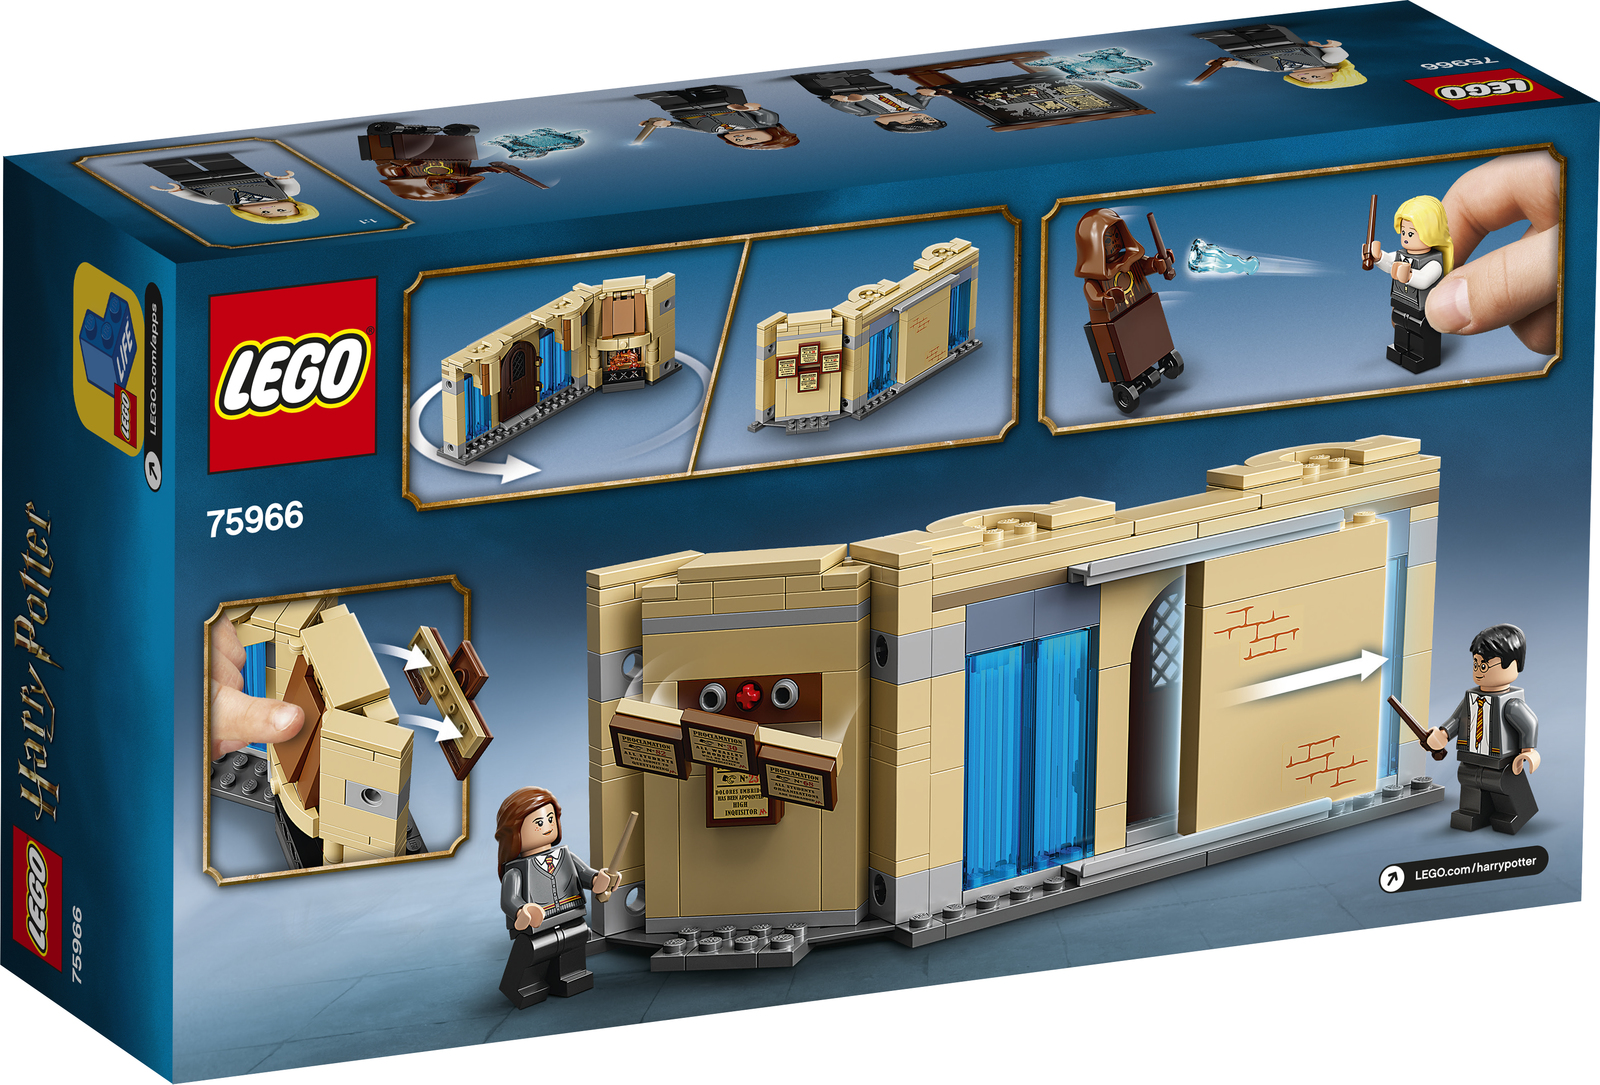 LEGO Harry Potter: Hogwarts Room of Requirement - (75966) image